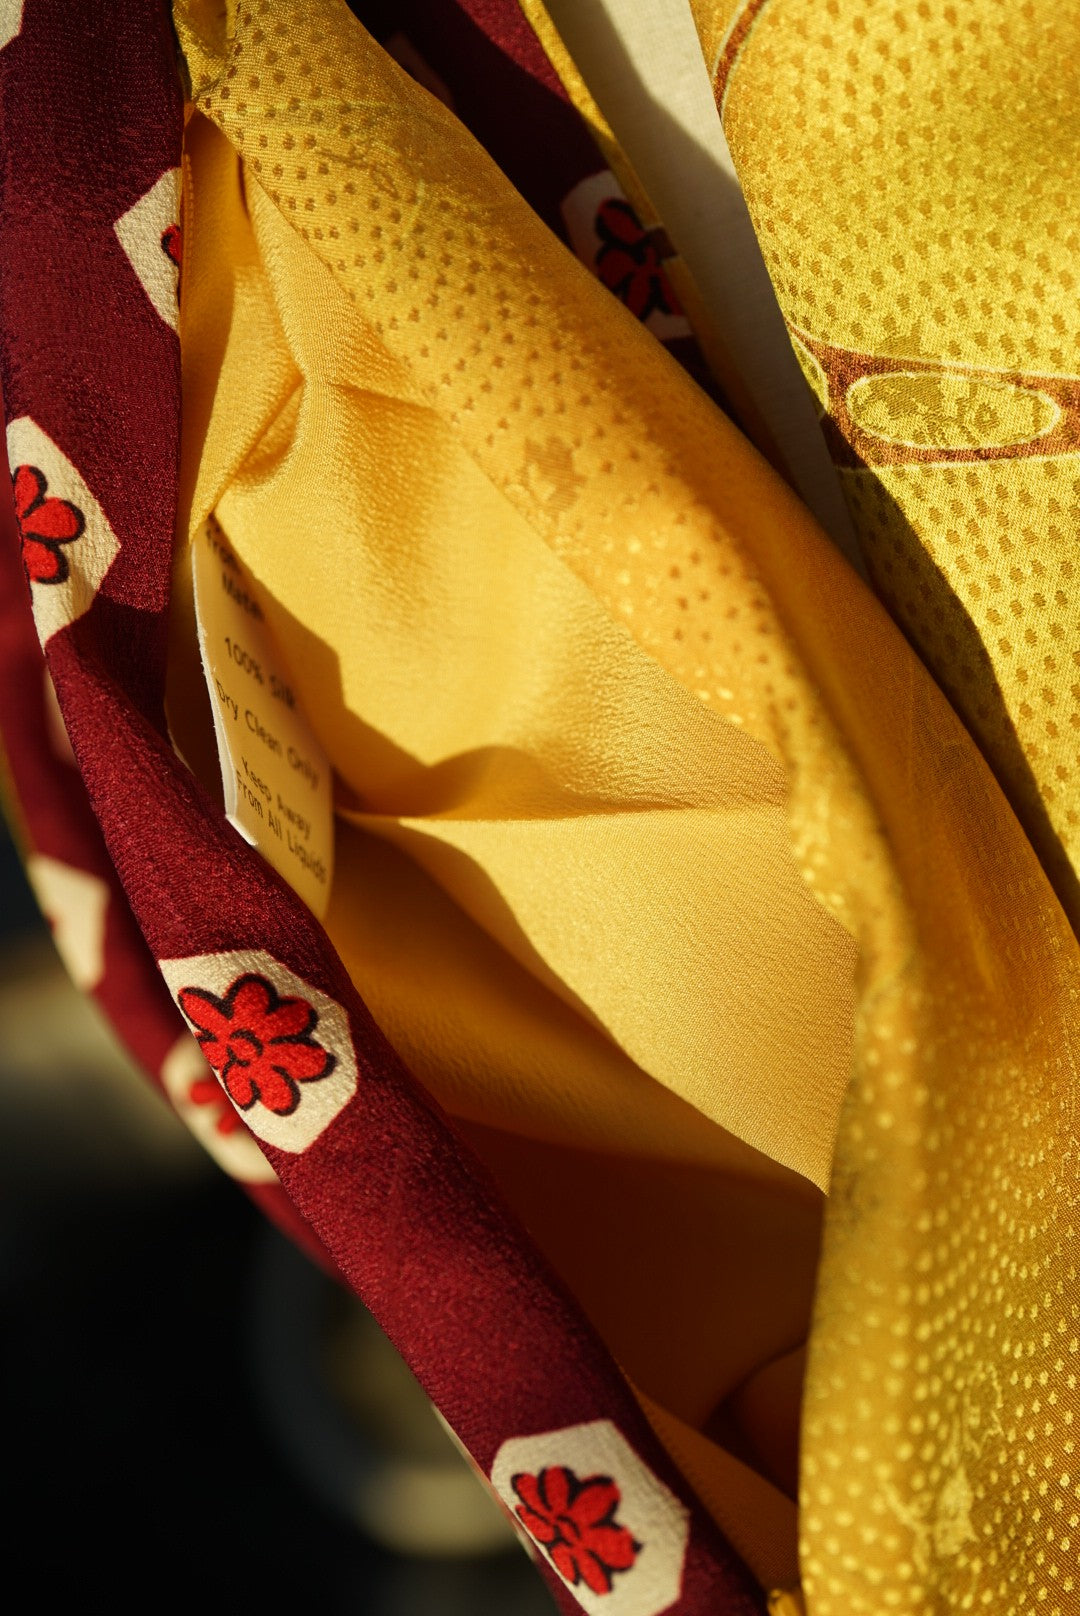 Gold, Maroon, and Red Flowers Infinity Scarf Handmade in Kyoto, Japan from Vintage Kimono - Pure Silk - Hidden Pocket